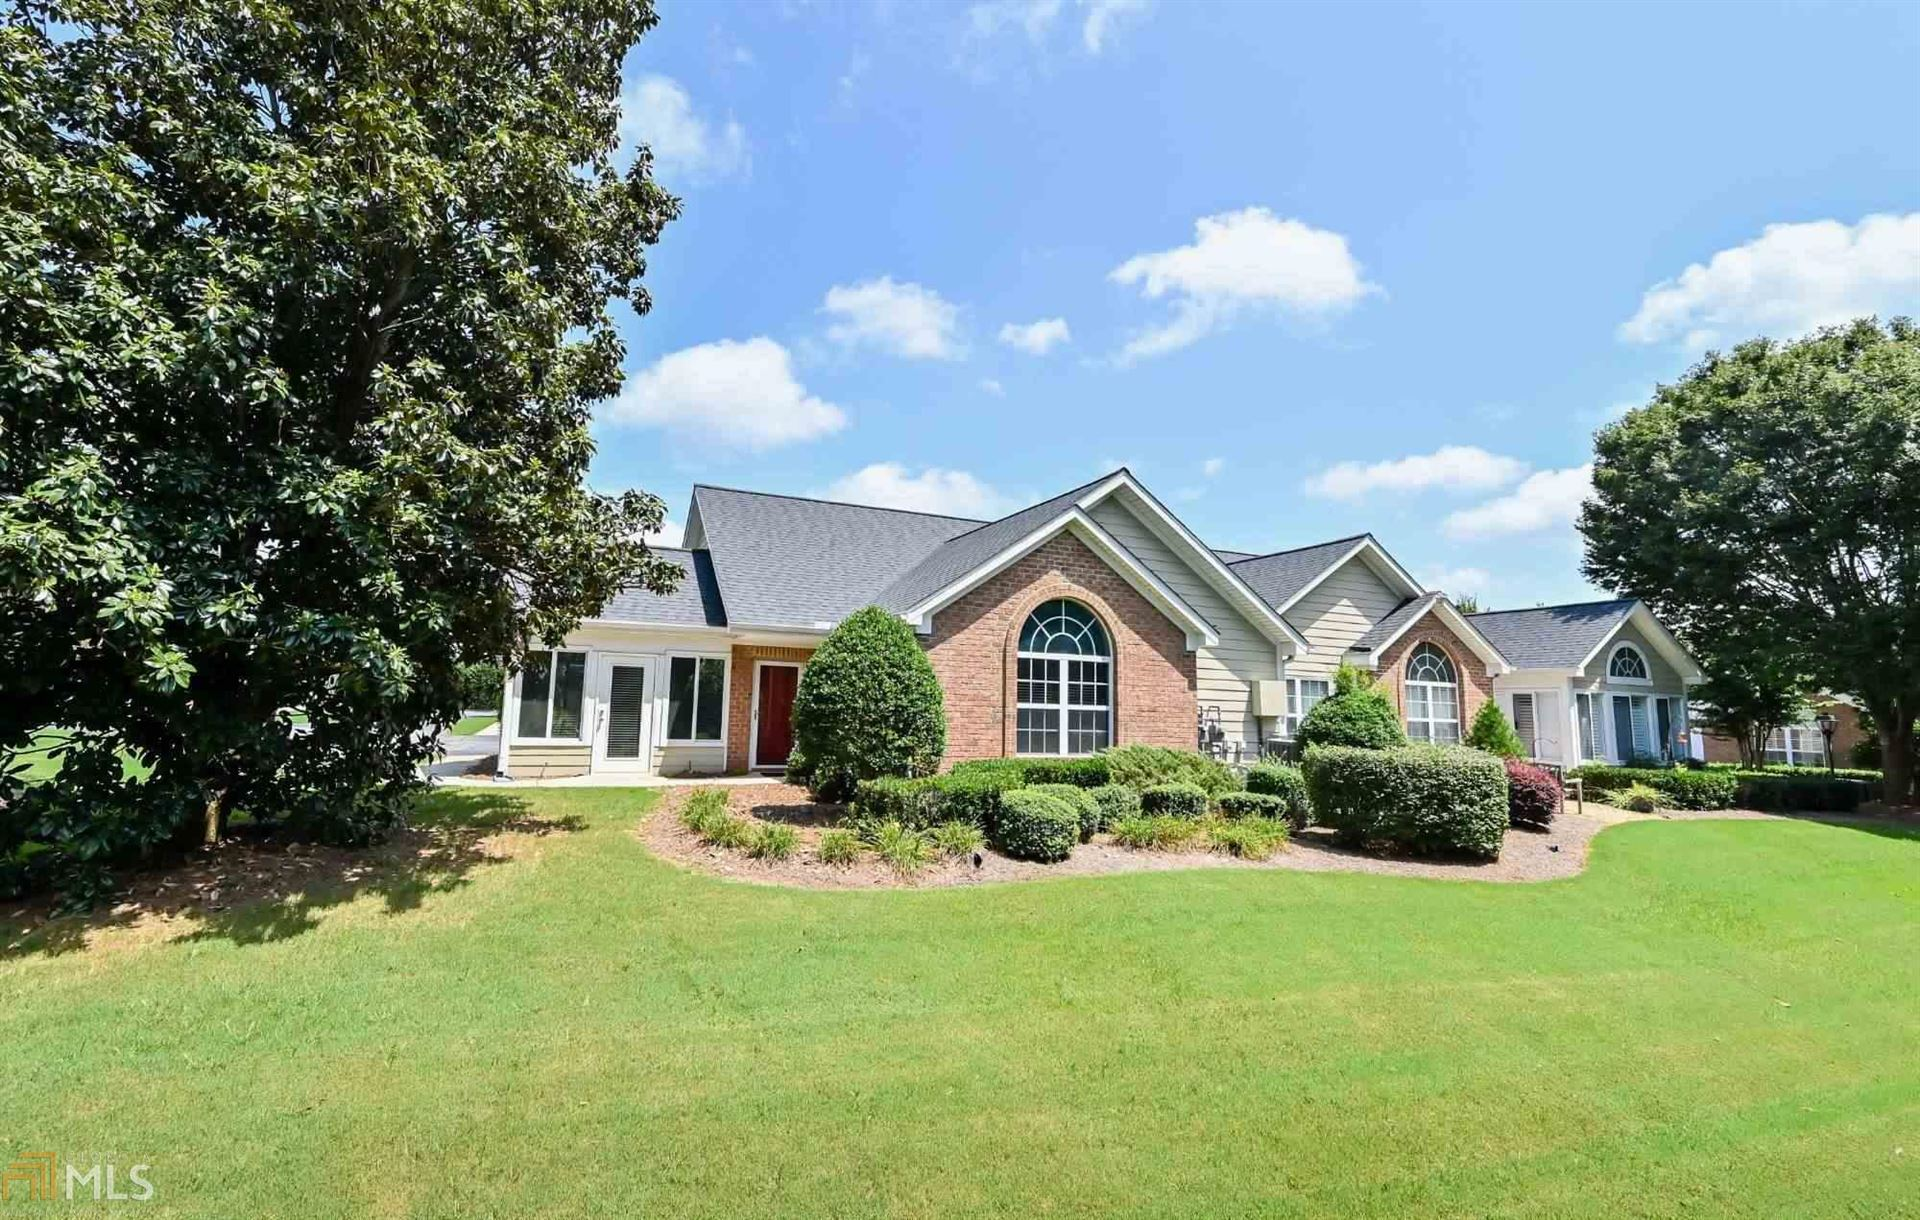 2243 Orchard Pl, Roswell, GA 30076 - MLS#: 8837519